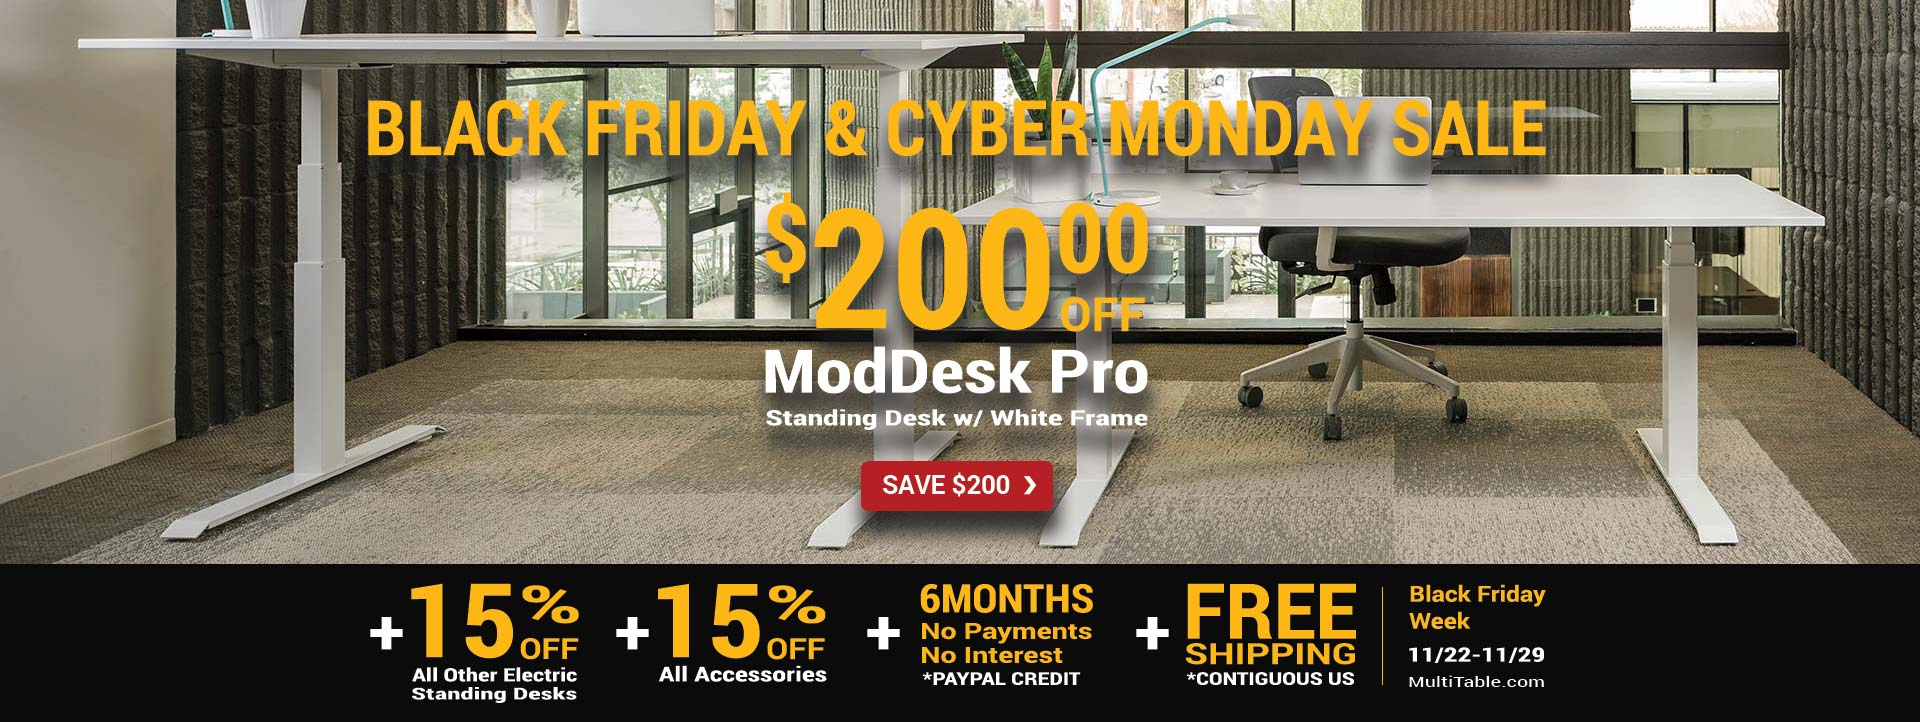 Best Standing Desk Black Friday Cyber Monday 2017 MultiTable Home Products